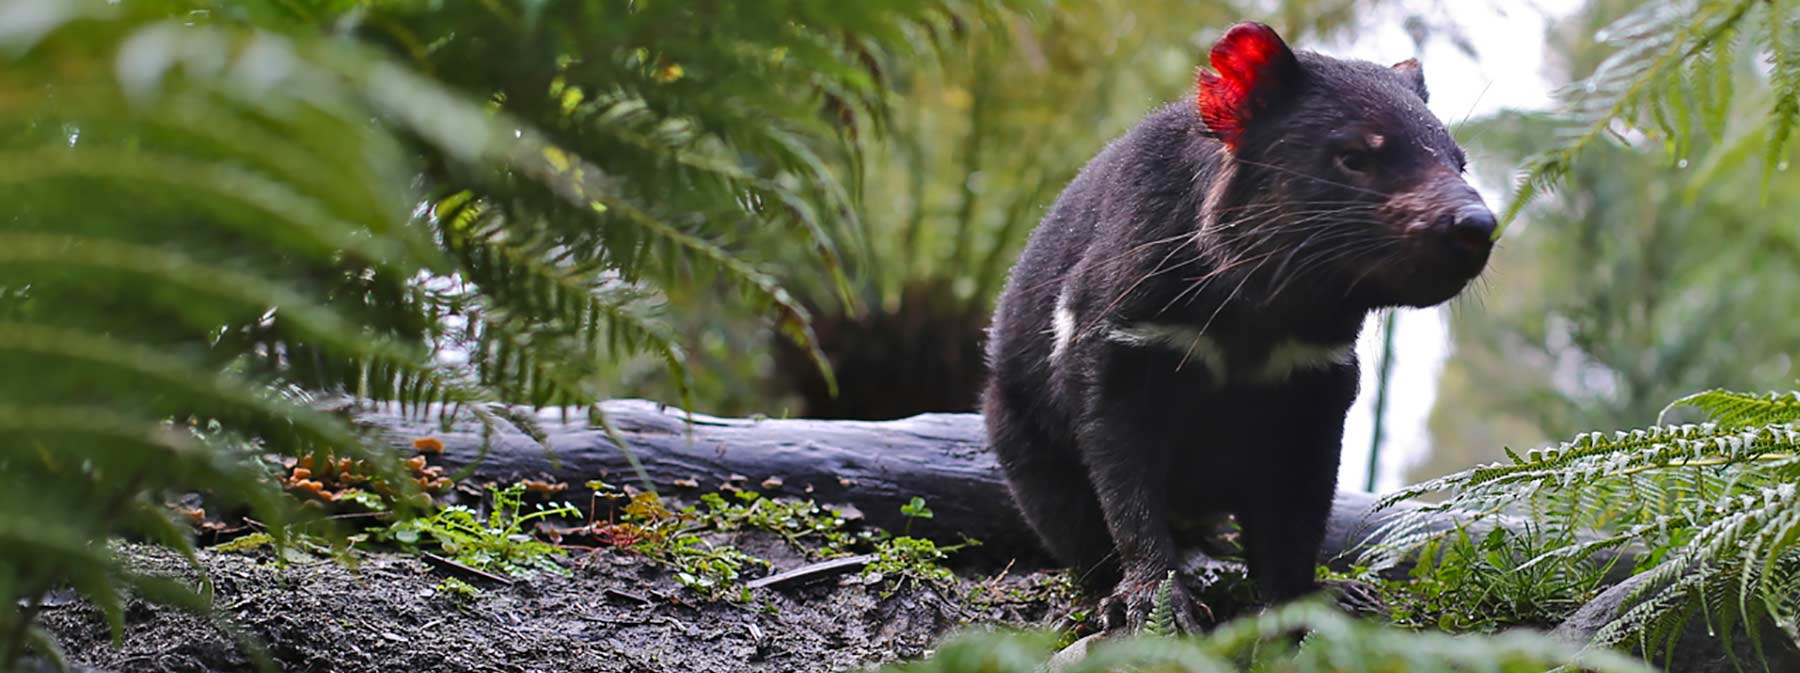 Tasmanian Devil in the ferns